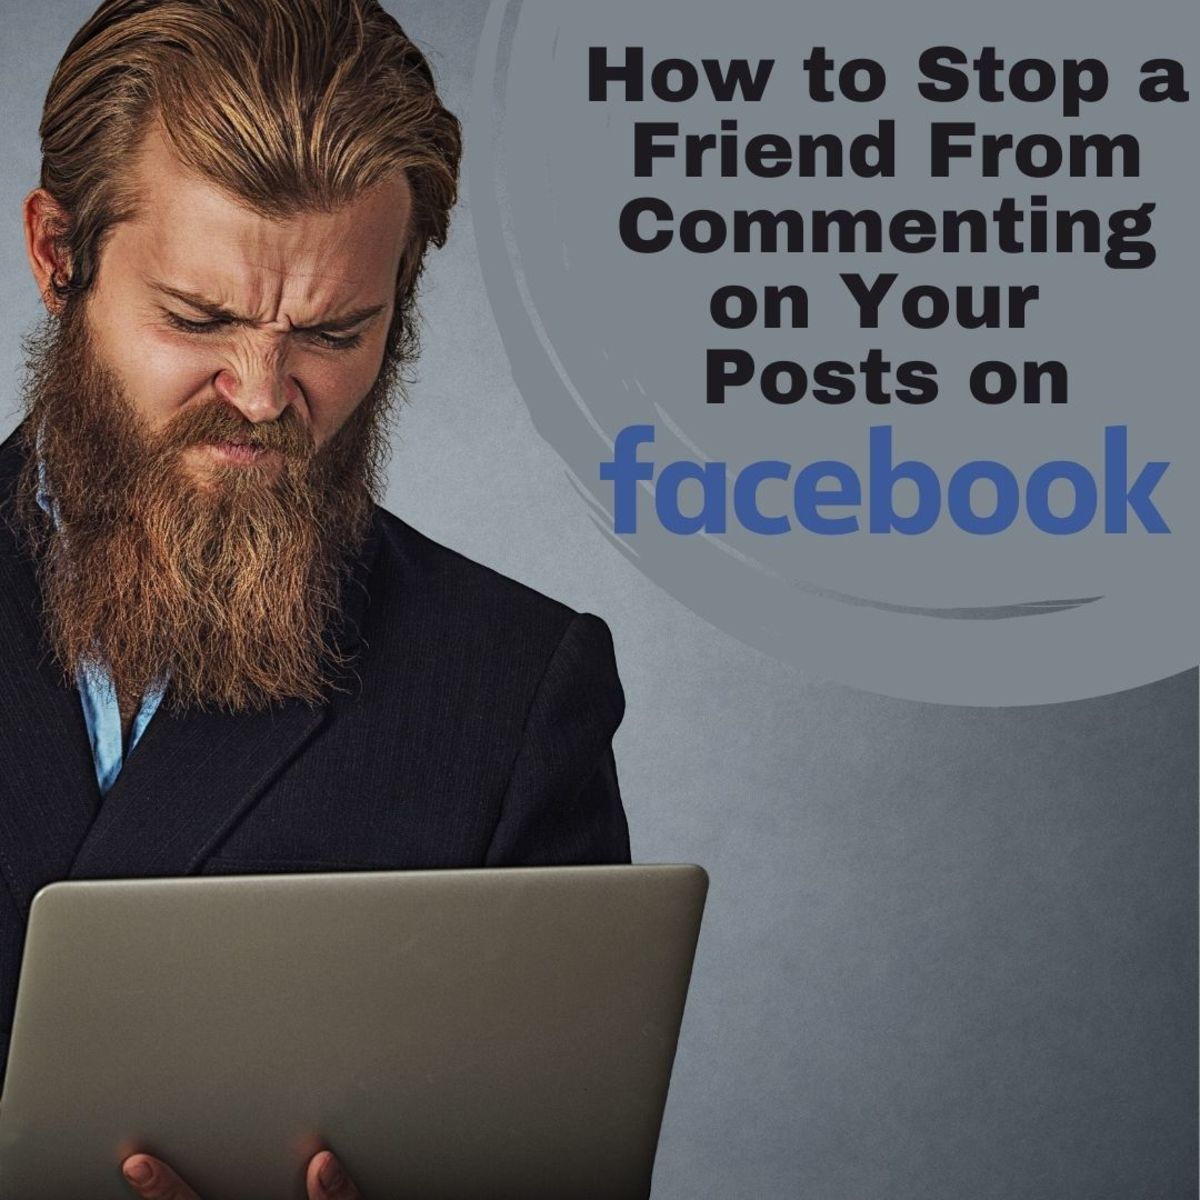 How to Block a Friend From Commenting on Facebook Posts